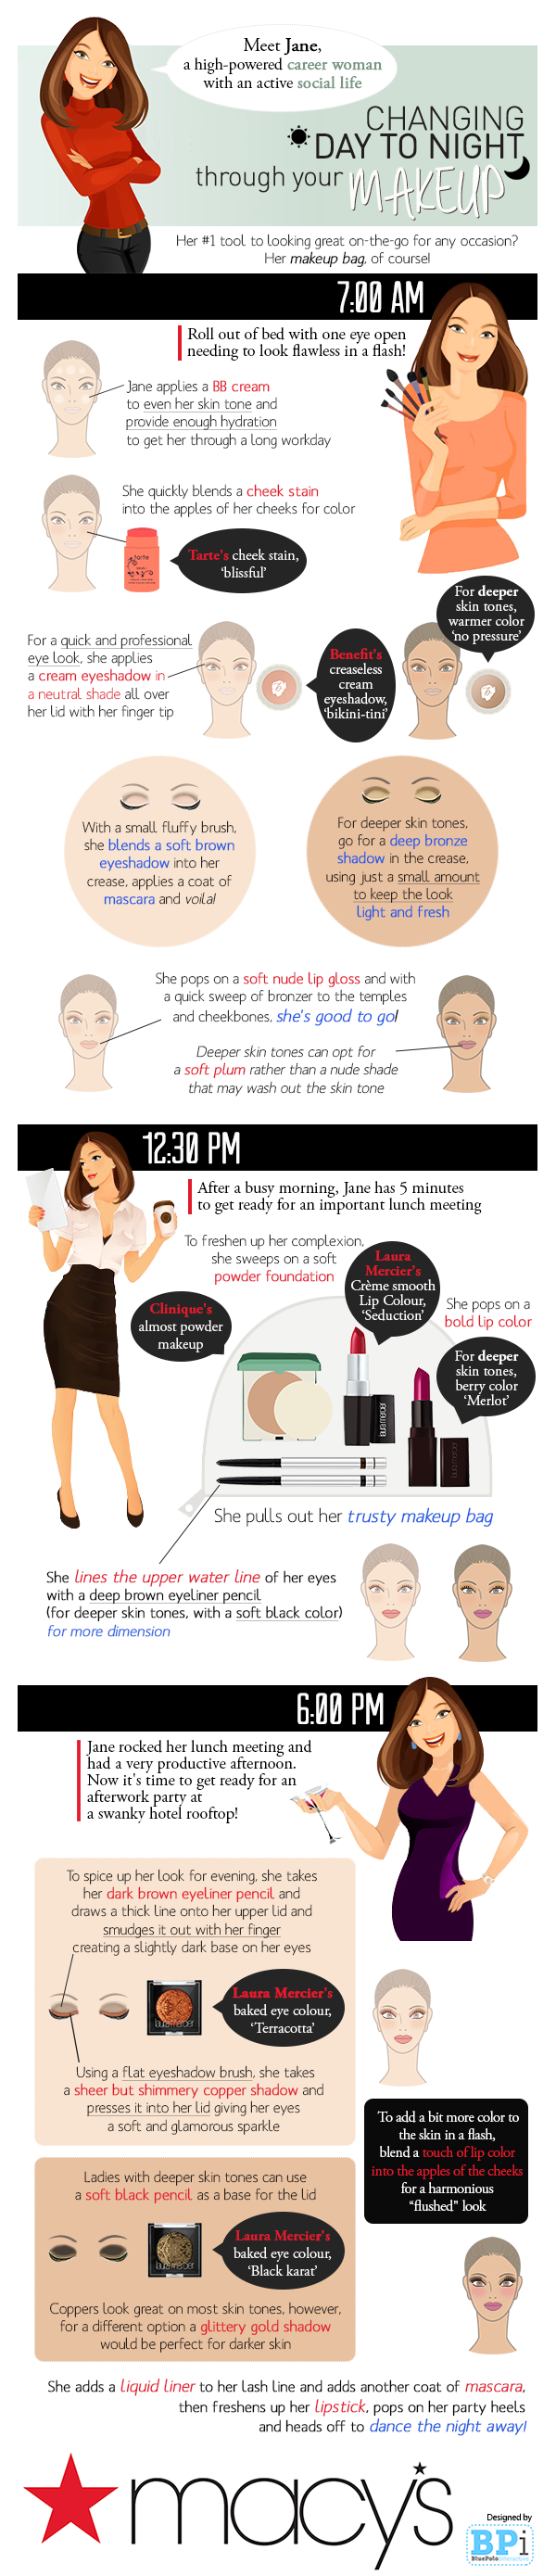 changing from day to night through your makeup 52ded8ae02a1b Day to Evening: Eyeliner, Lipstick and a Martini